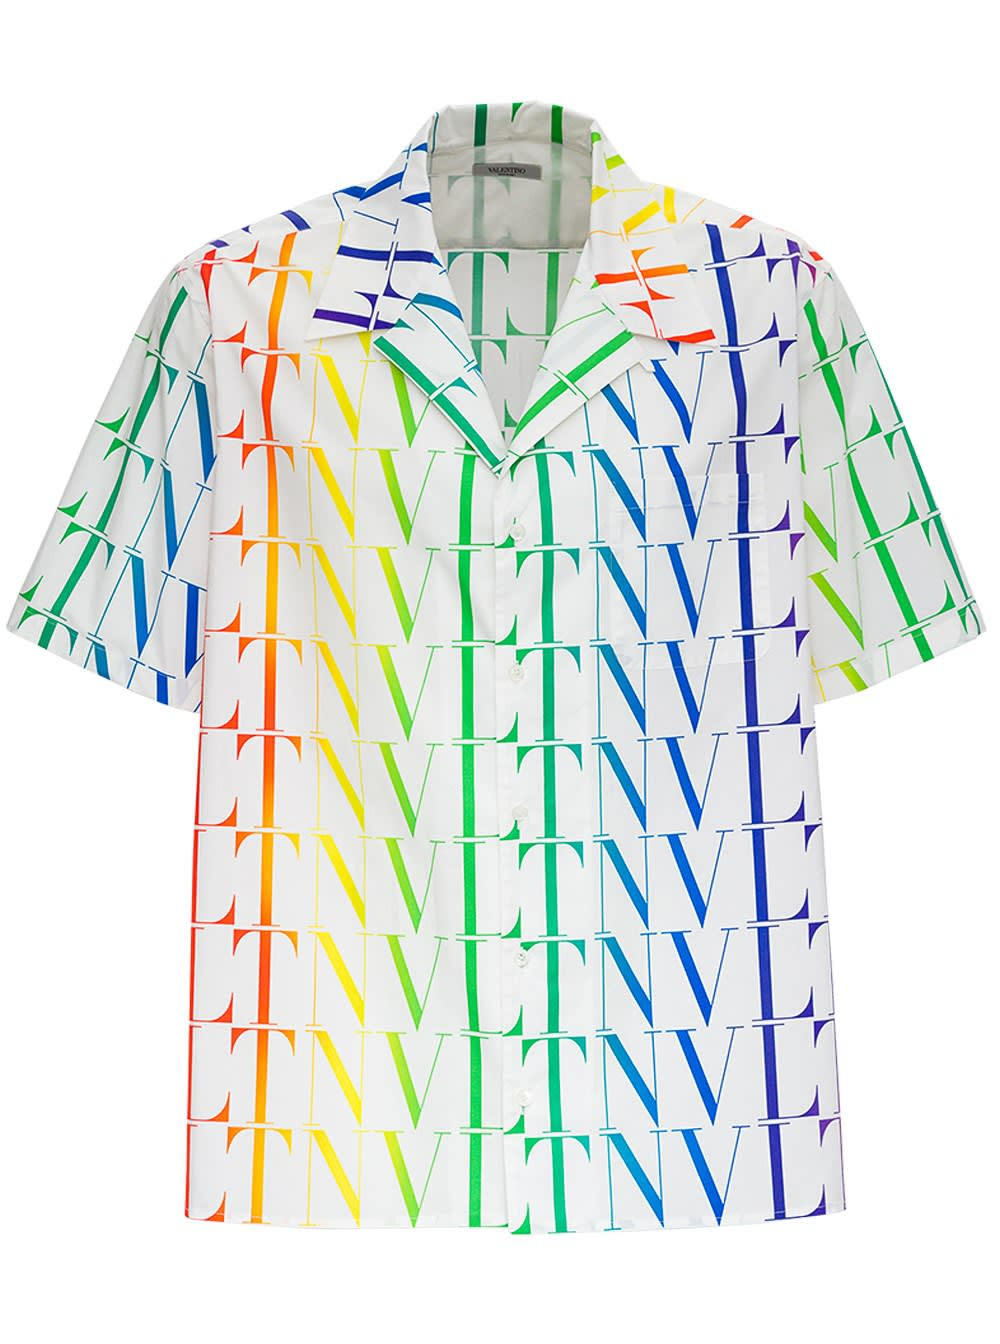 VALENTINO VLTN TIMES MULTICOLOR JERSEY SHIRT